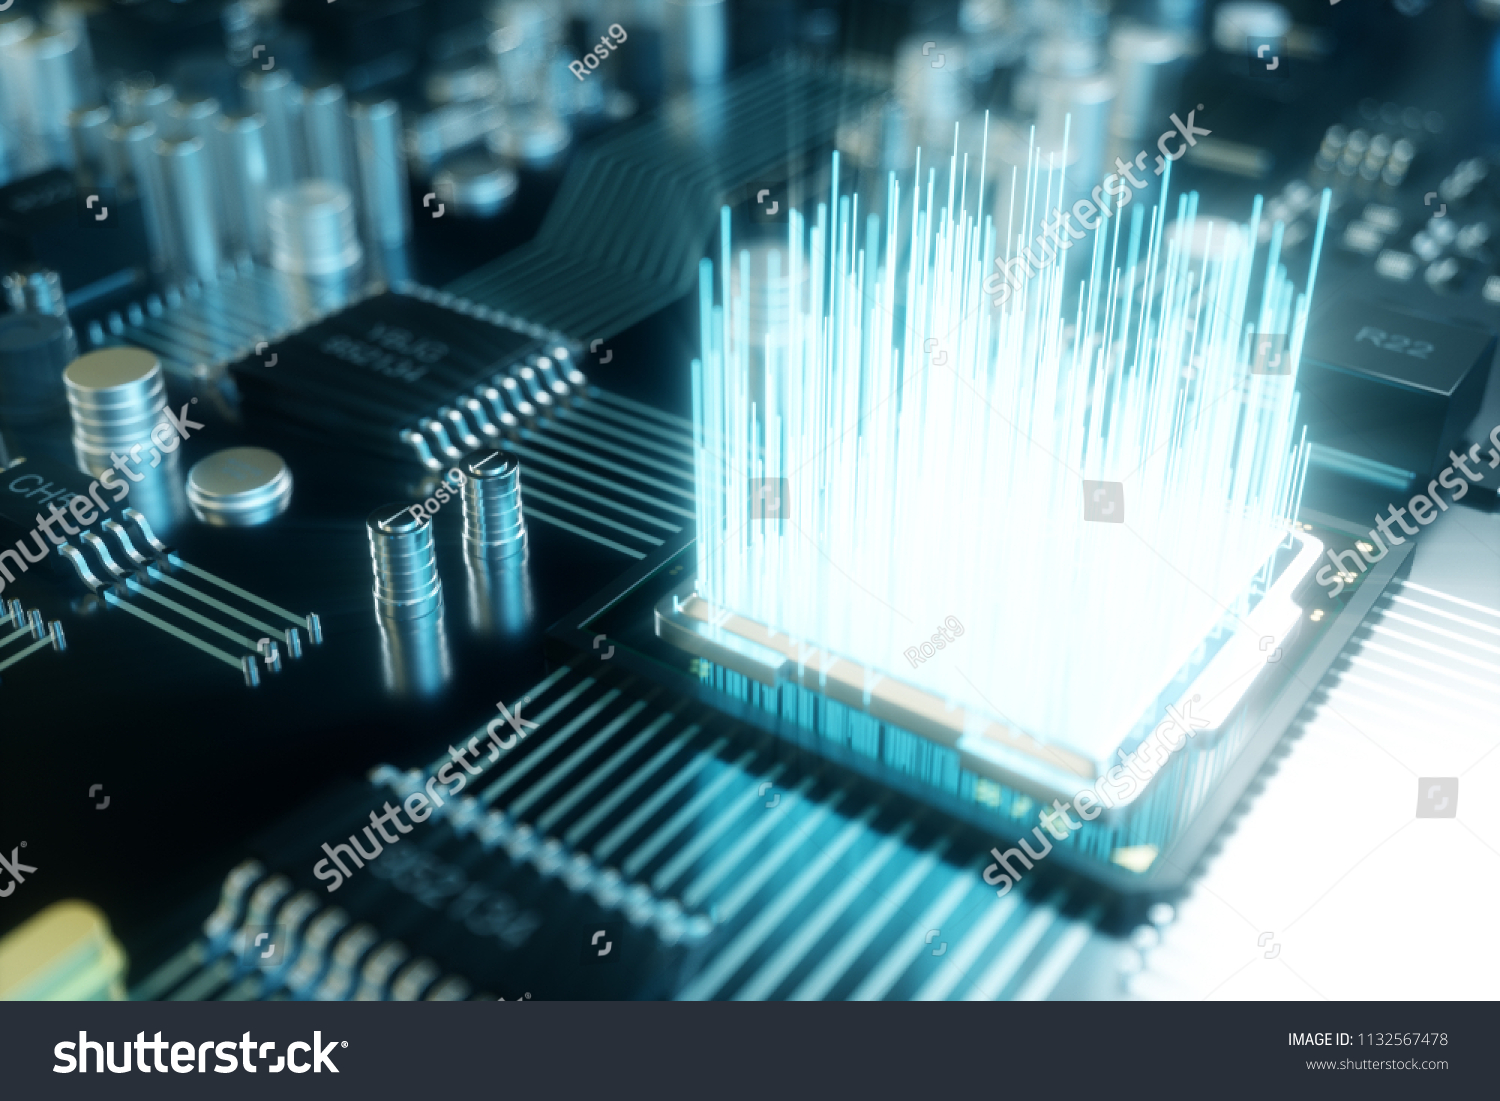 Royalty Free Stock Illustration Of 3 D Computer Chip Detail A Printed Circuit Board Image 3d Processor On The Concept